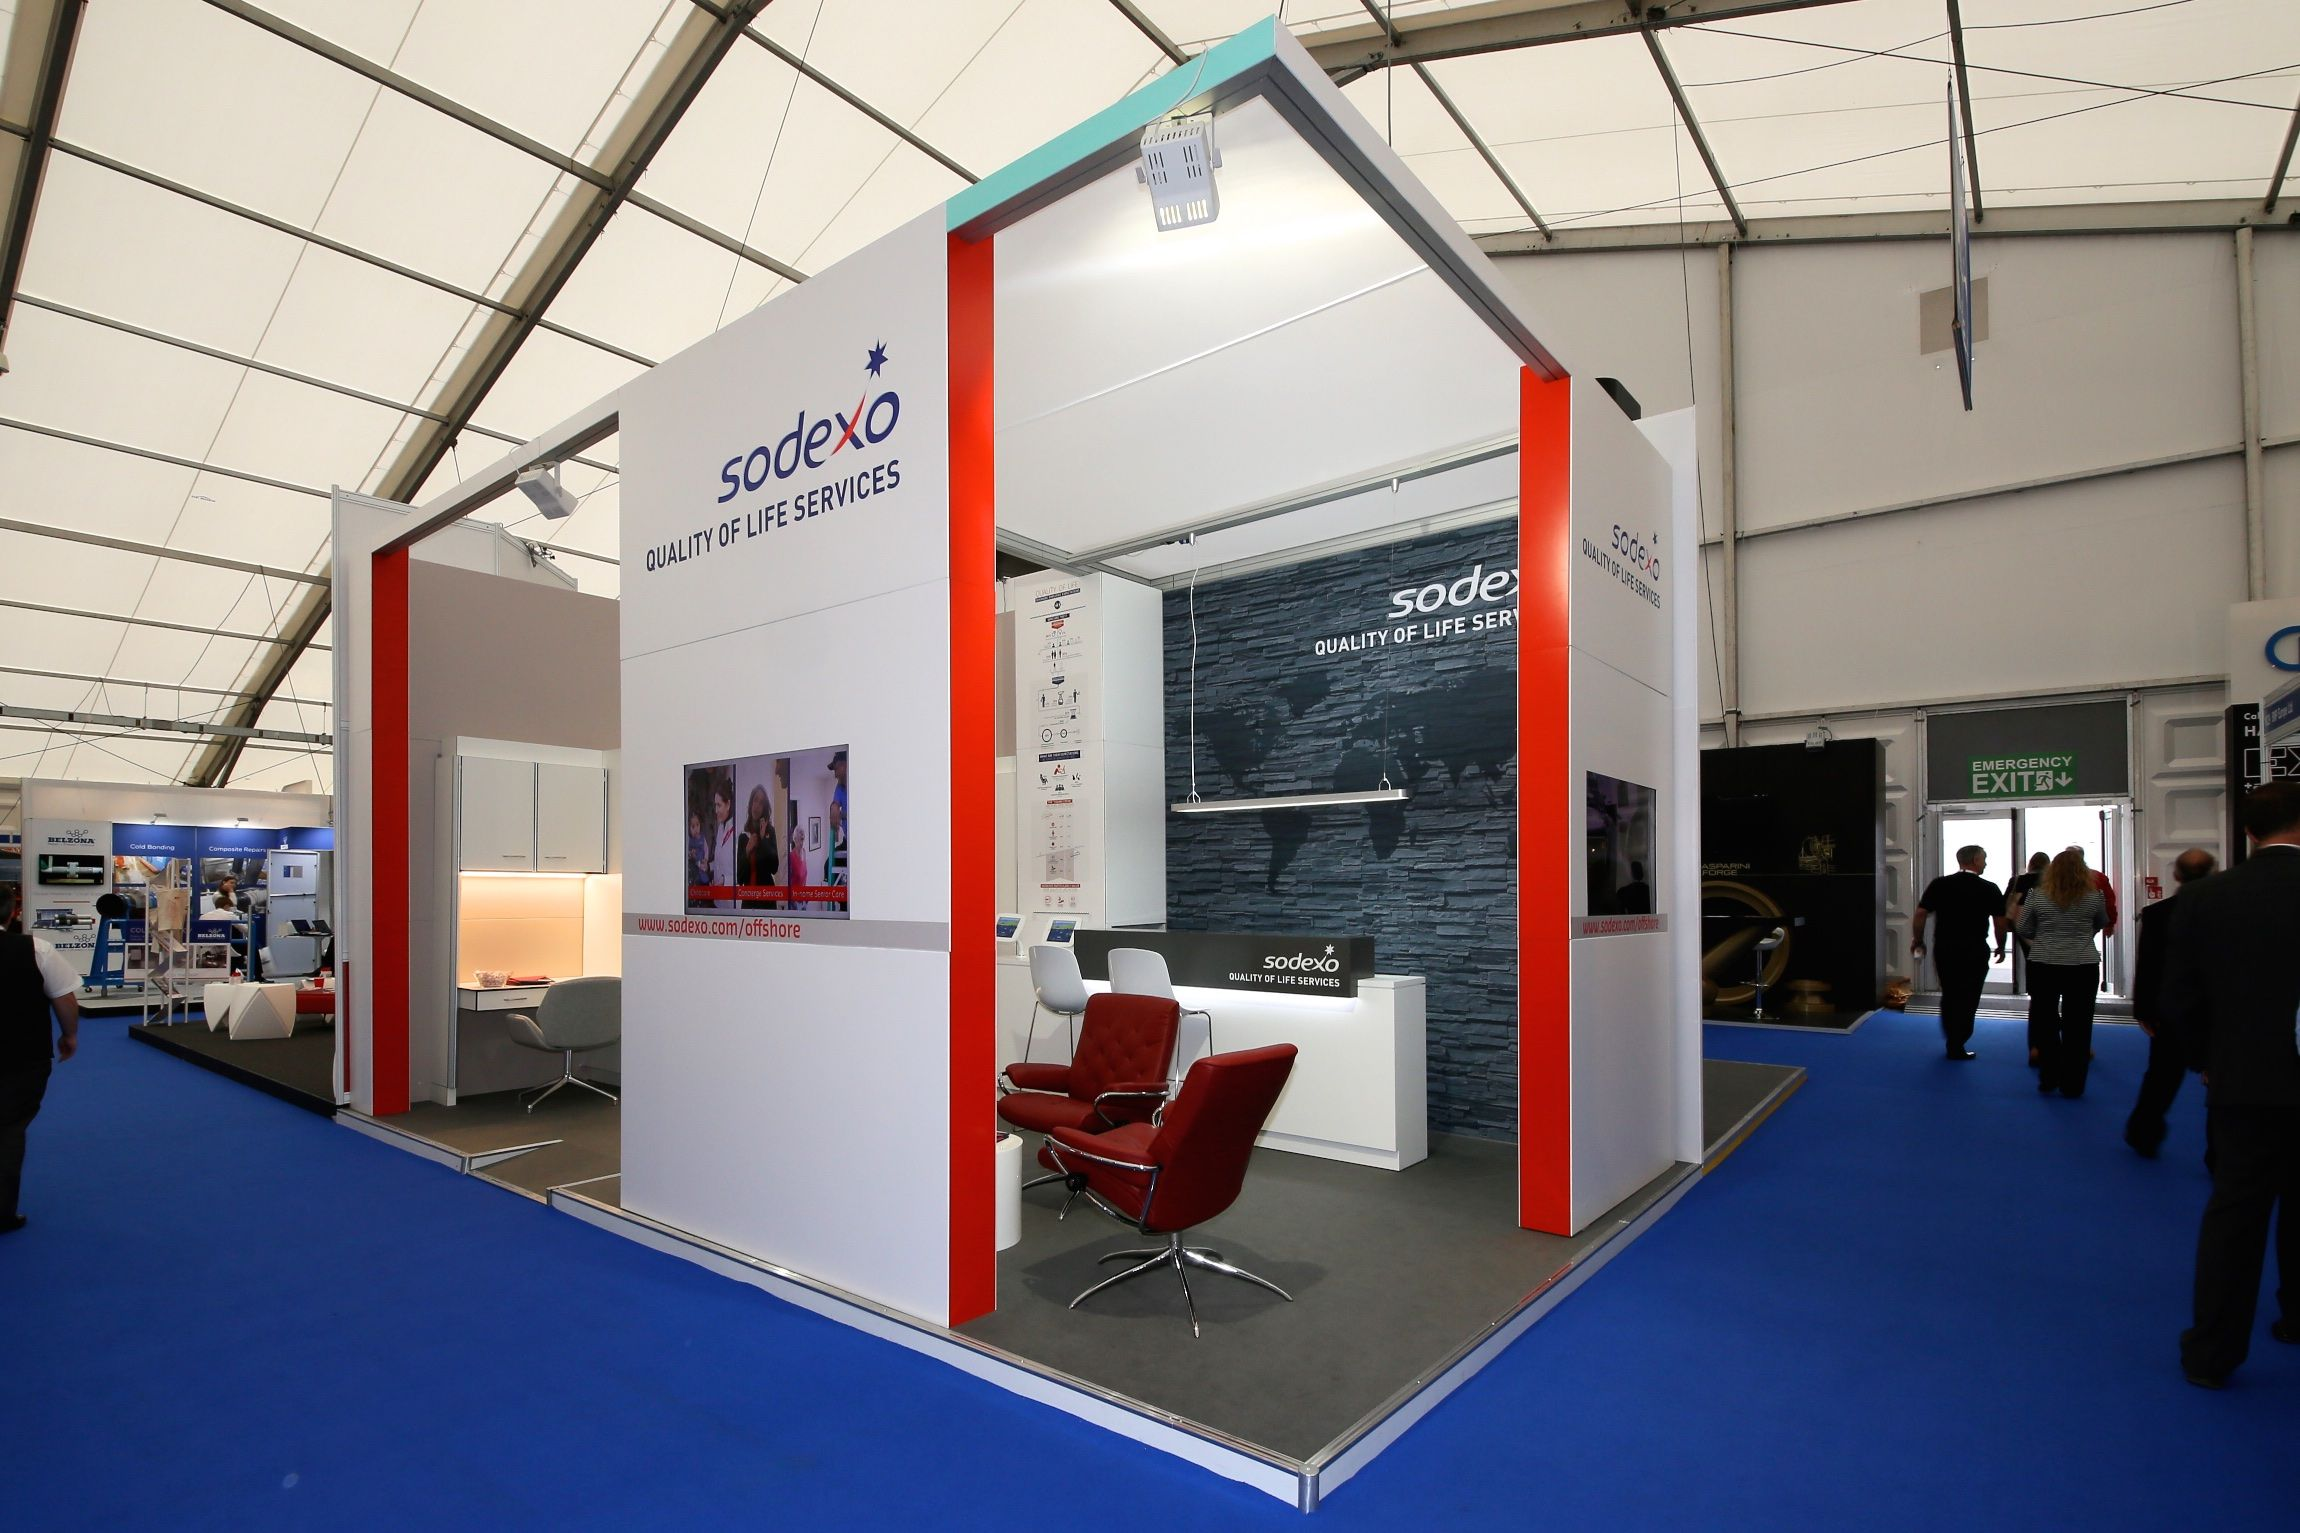 Exhibition Stand Work : Sodexo remote sites exhibition stand at spe offshore